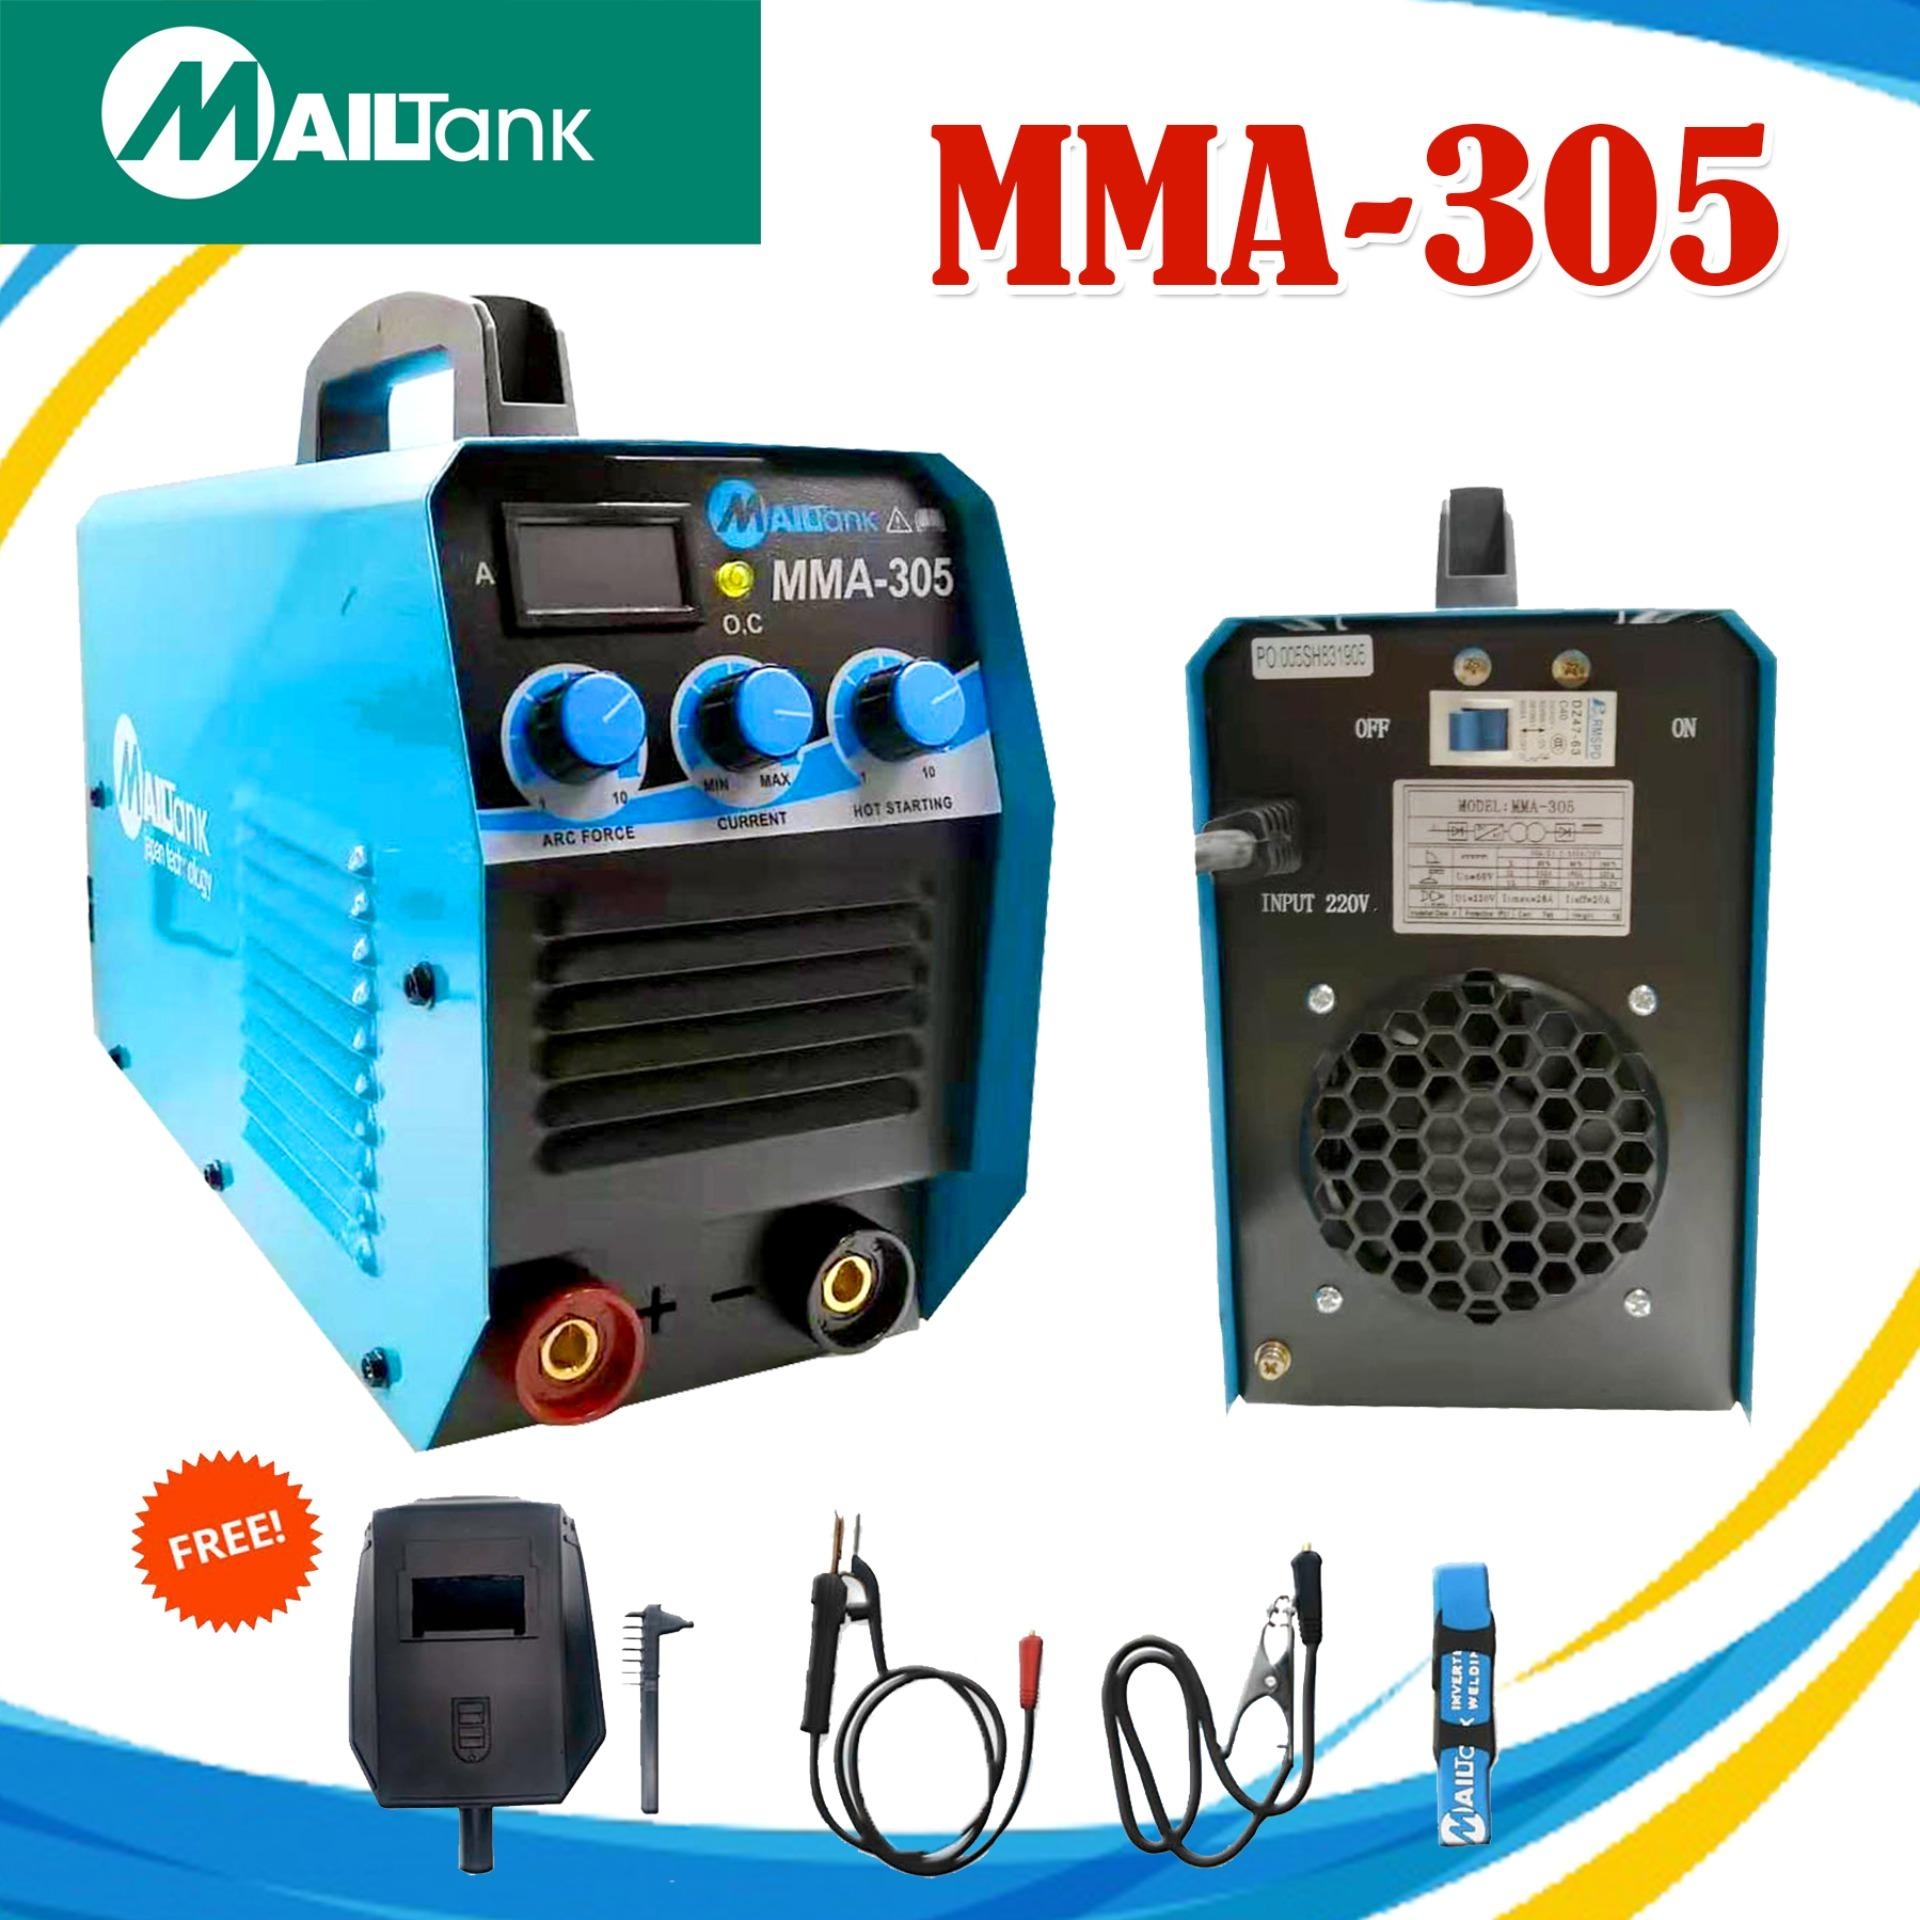 MailTank MMA-305 ARC Force Inverter IGBT ARC Welding Machine